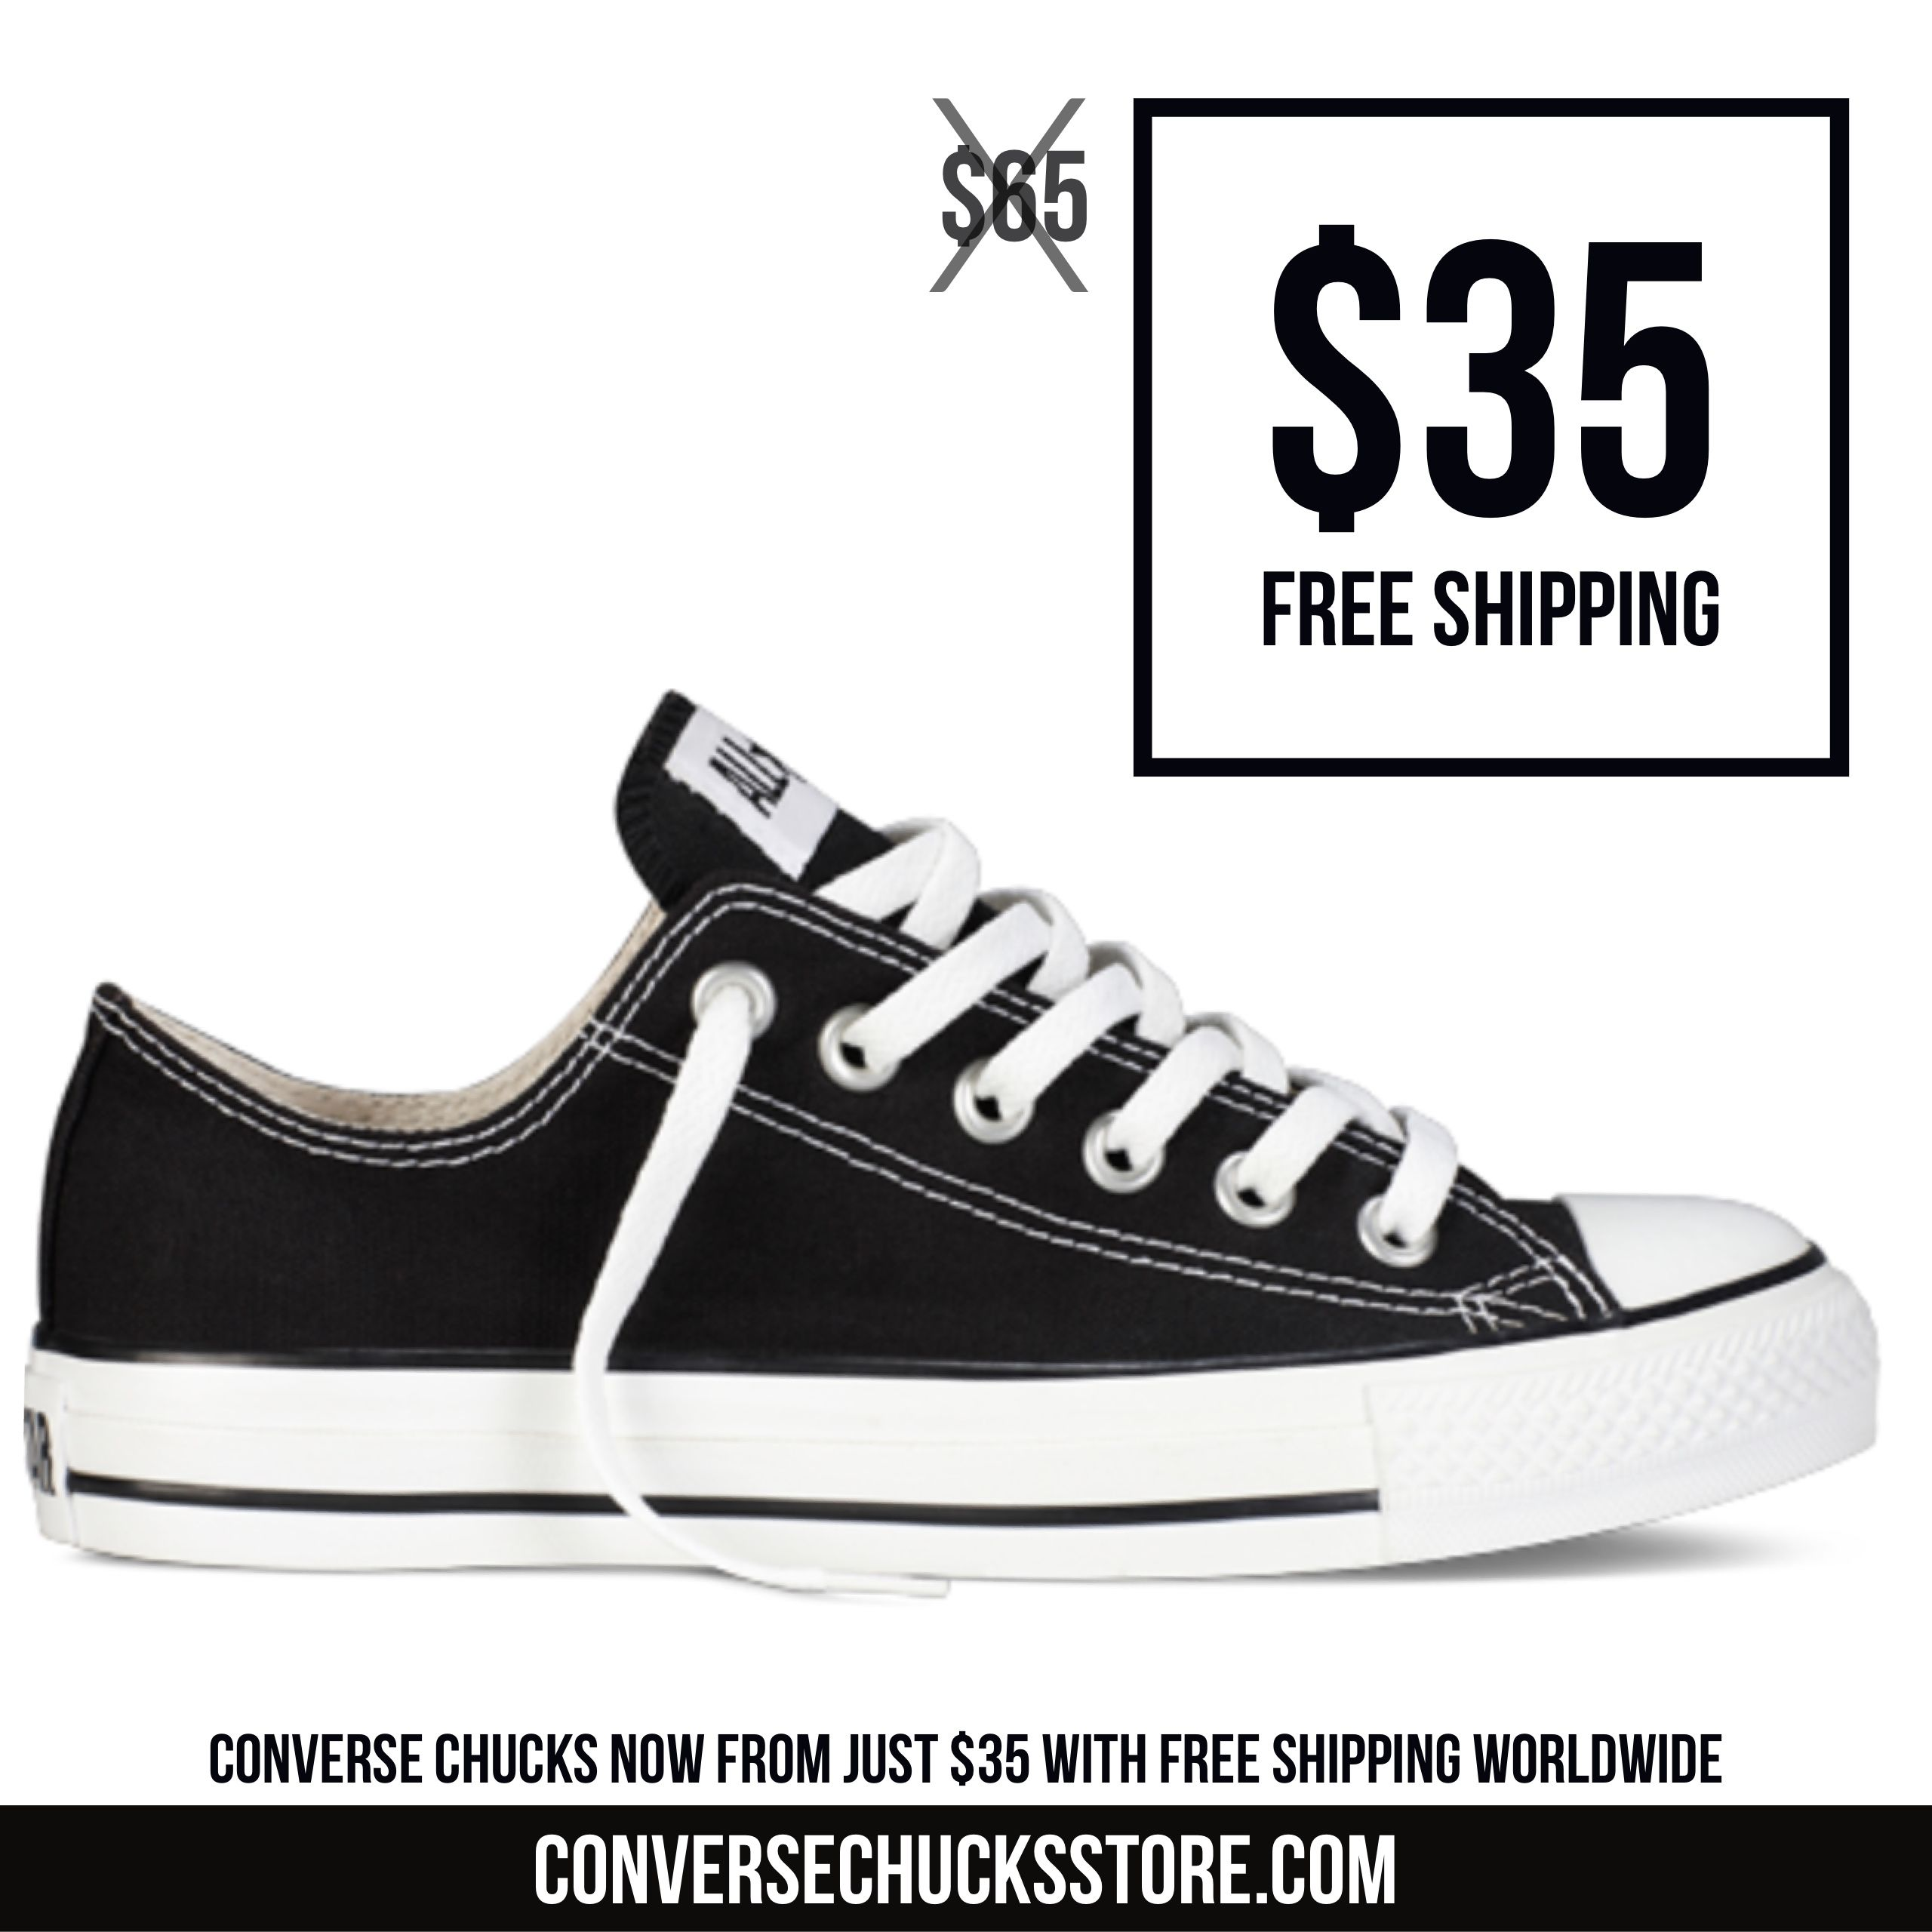 e9acf7f84ab3 Converse Chuck Taylors from  35 with free worldwide shipping. Order now on our  website